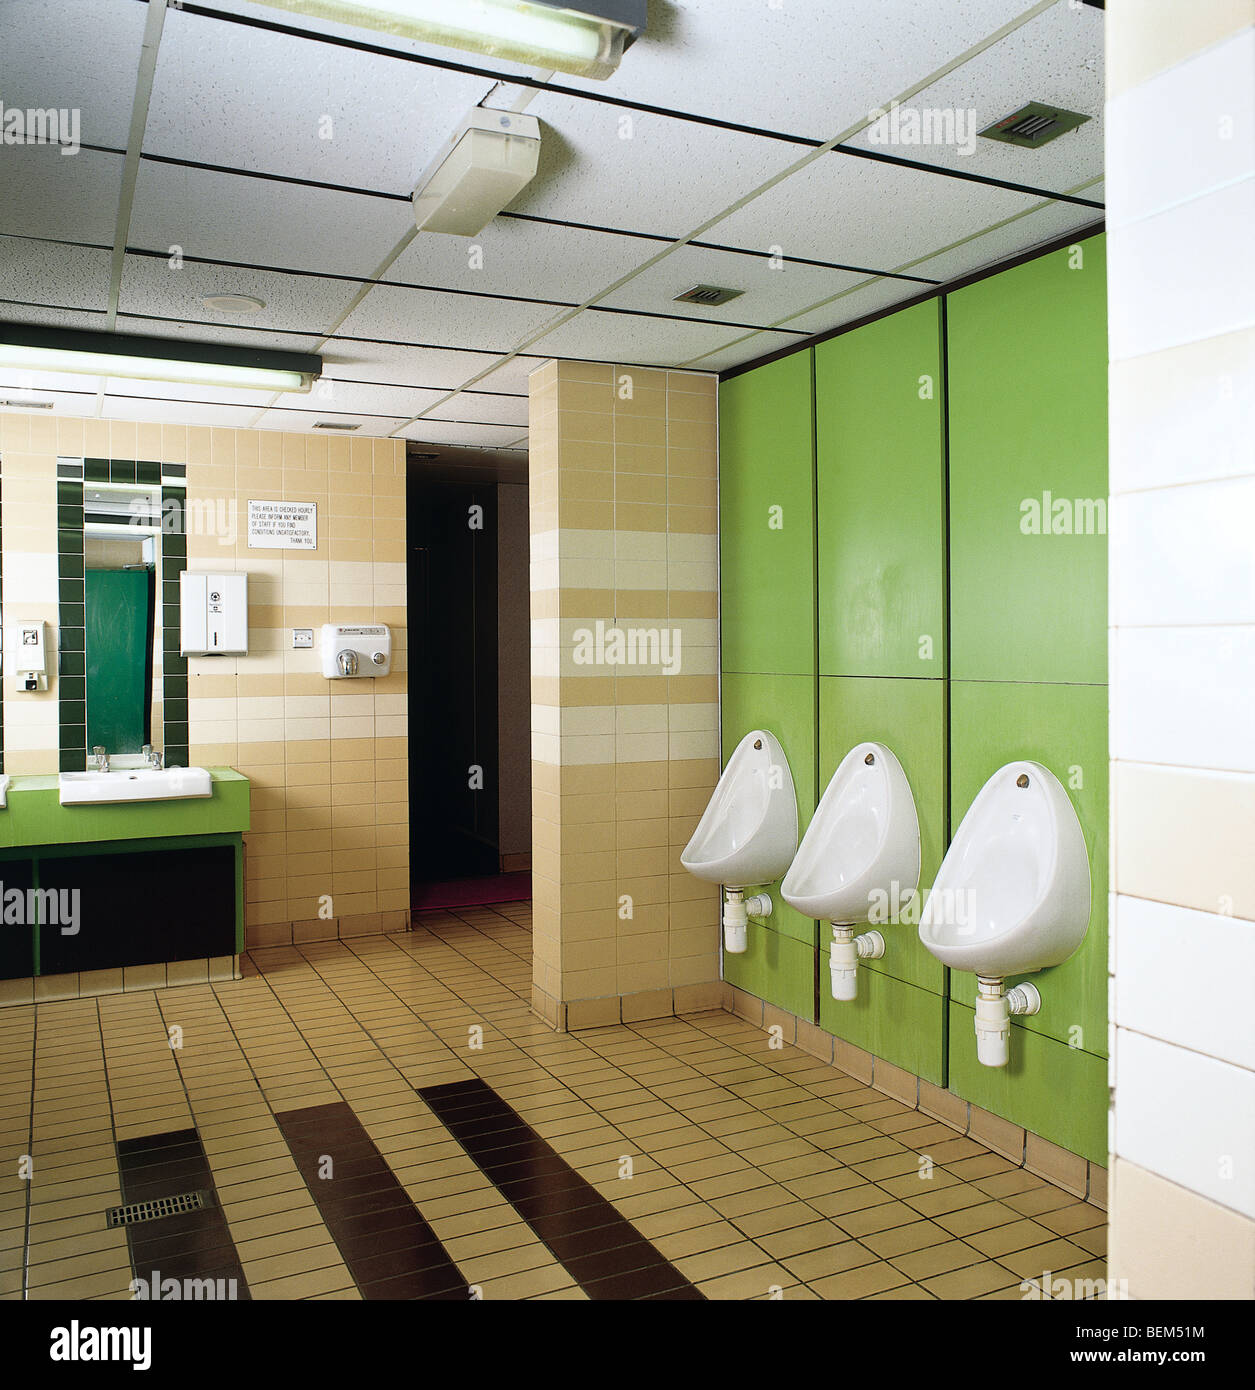 commercial bathroom paper towel dispenser, commercial bathroom sinks, commercial bathroom vanity tops, commercial bathroom counters, commercial bathroom showers, commercial bathroom partitions, commercial bathroom vanity units, commercial bathroom stalls, on commercial bathroom urinal design